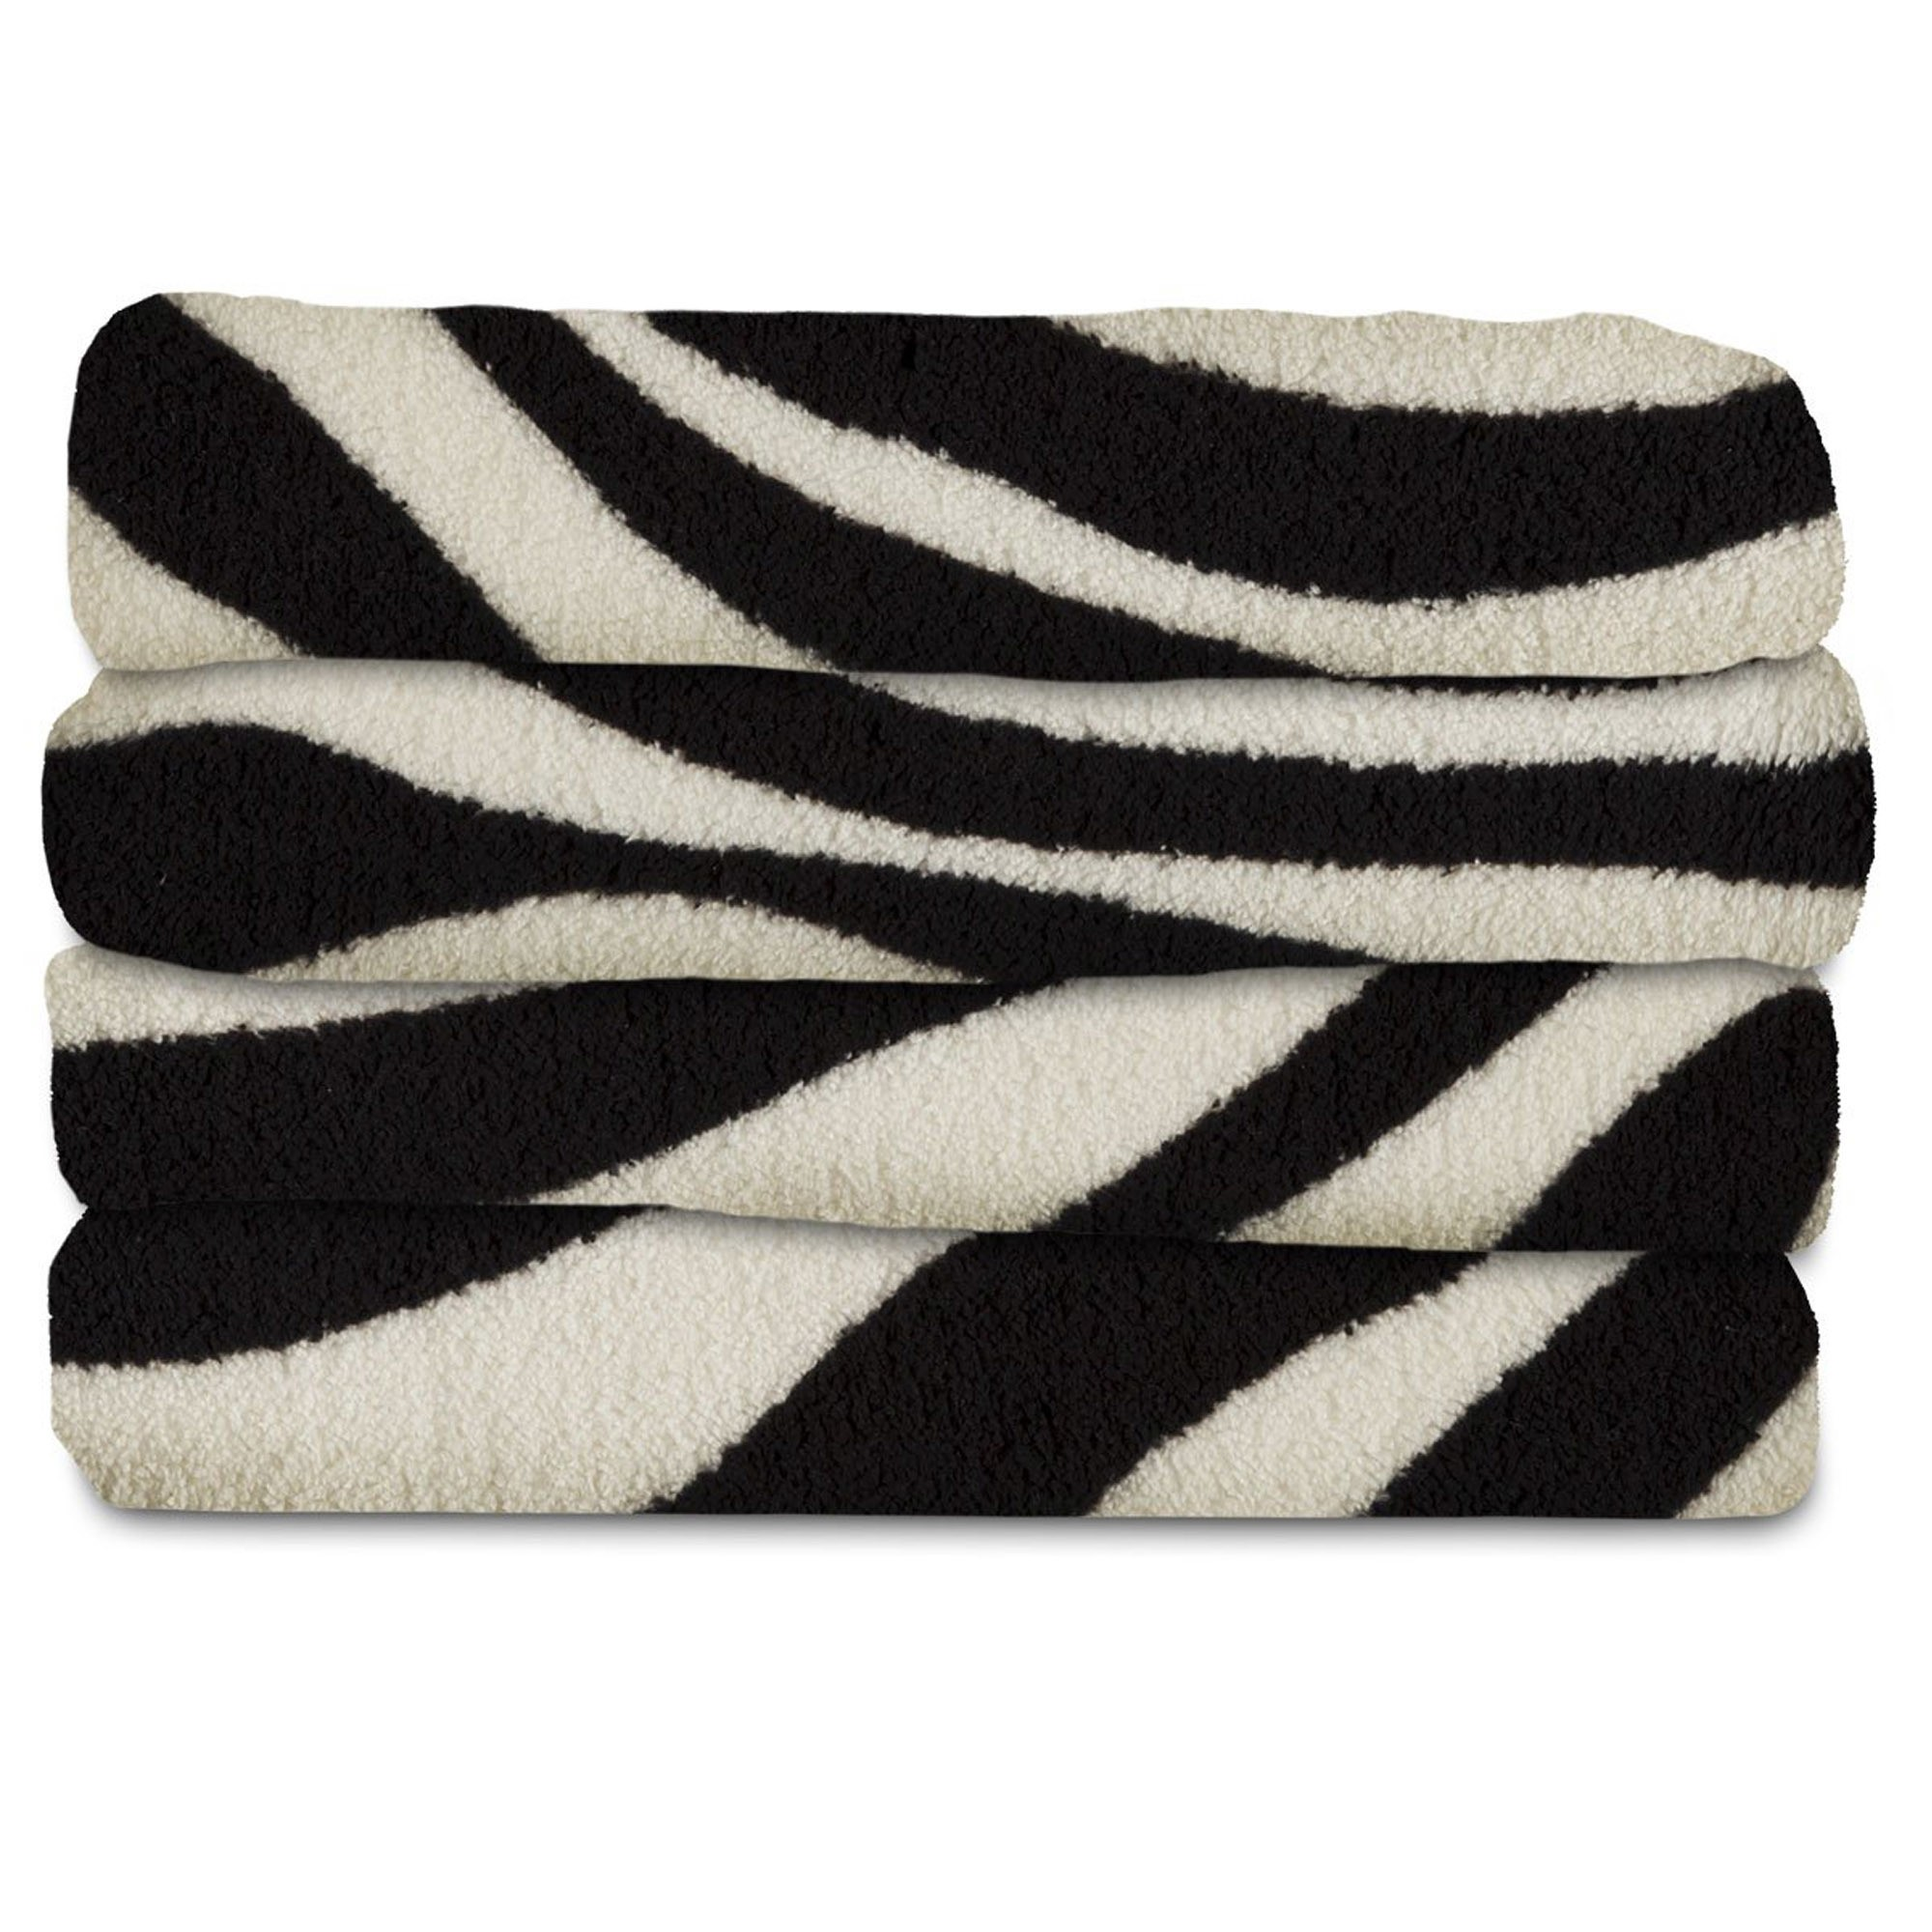 Electric Throw Blanket Walmart Endearing Fleece Heated Throw Zebra Black  Sunbeam  Products Design Decoration